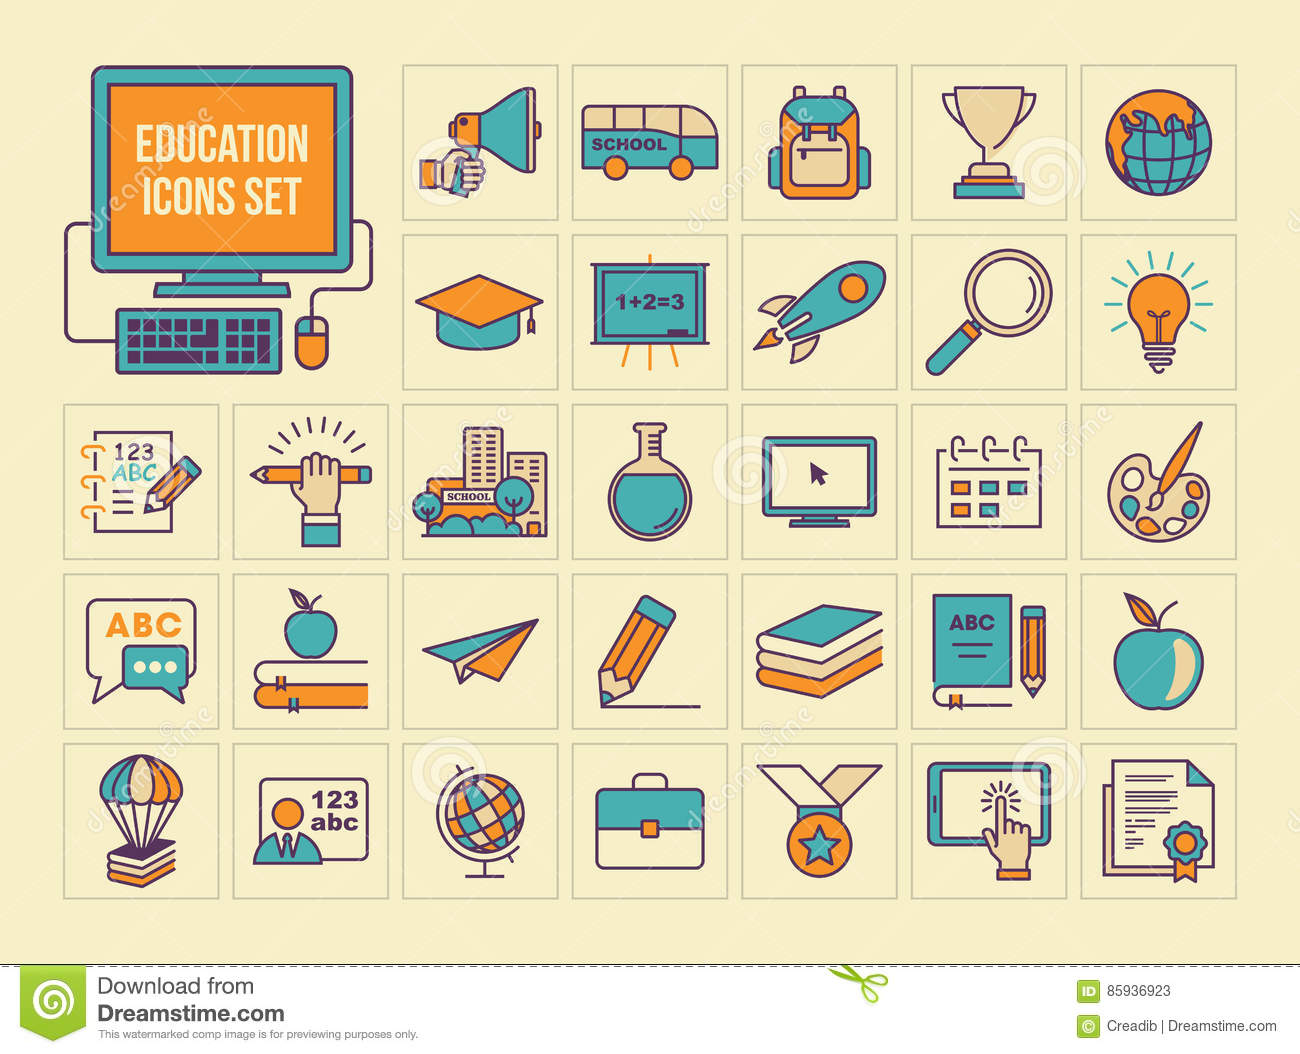 Education icons set, colored flat line icons